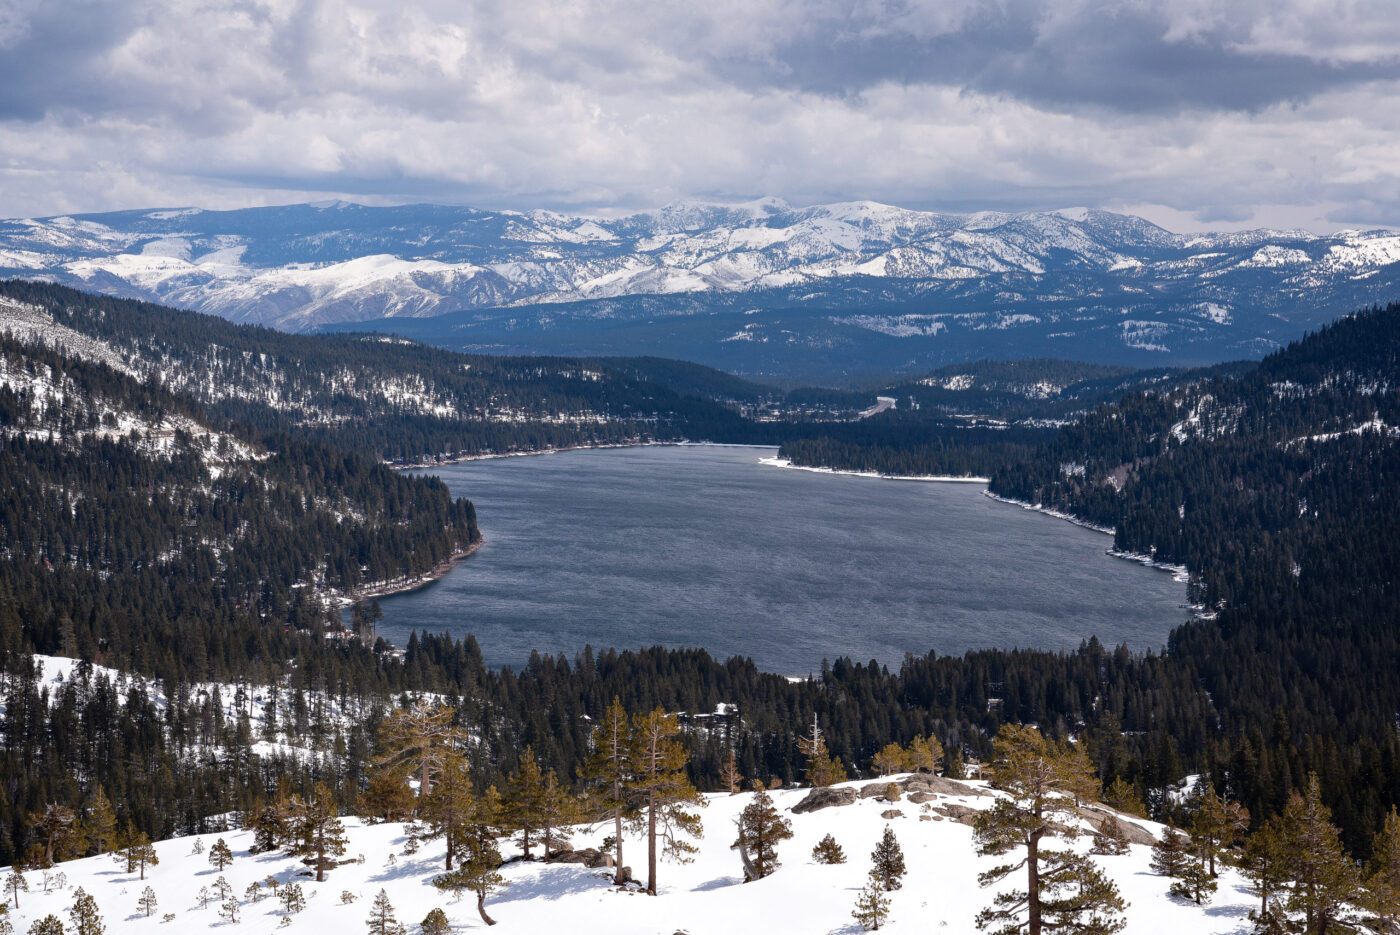 Donner pass, winter, view, mcglashan point, cannabalism, california, famous